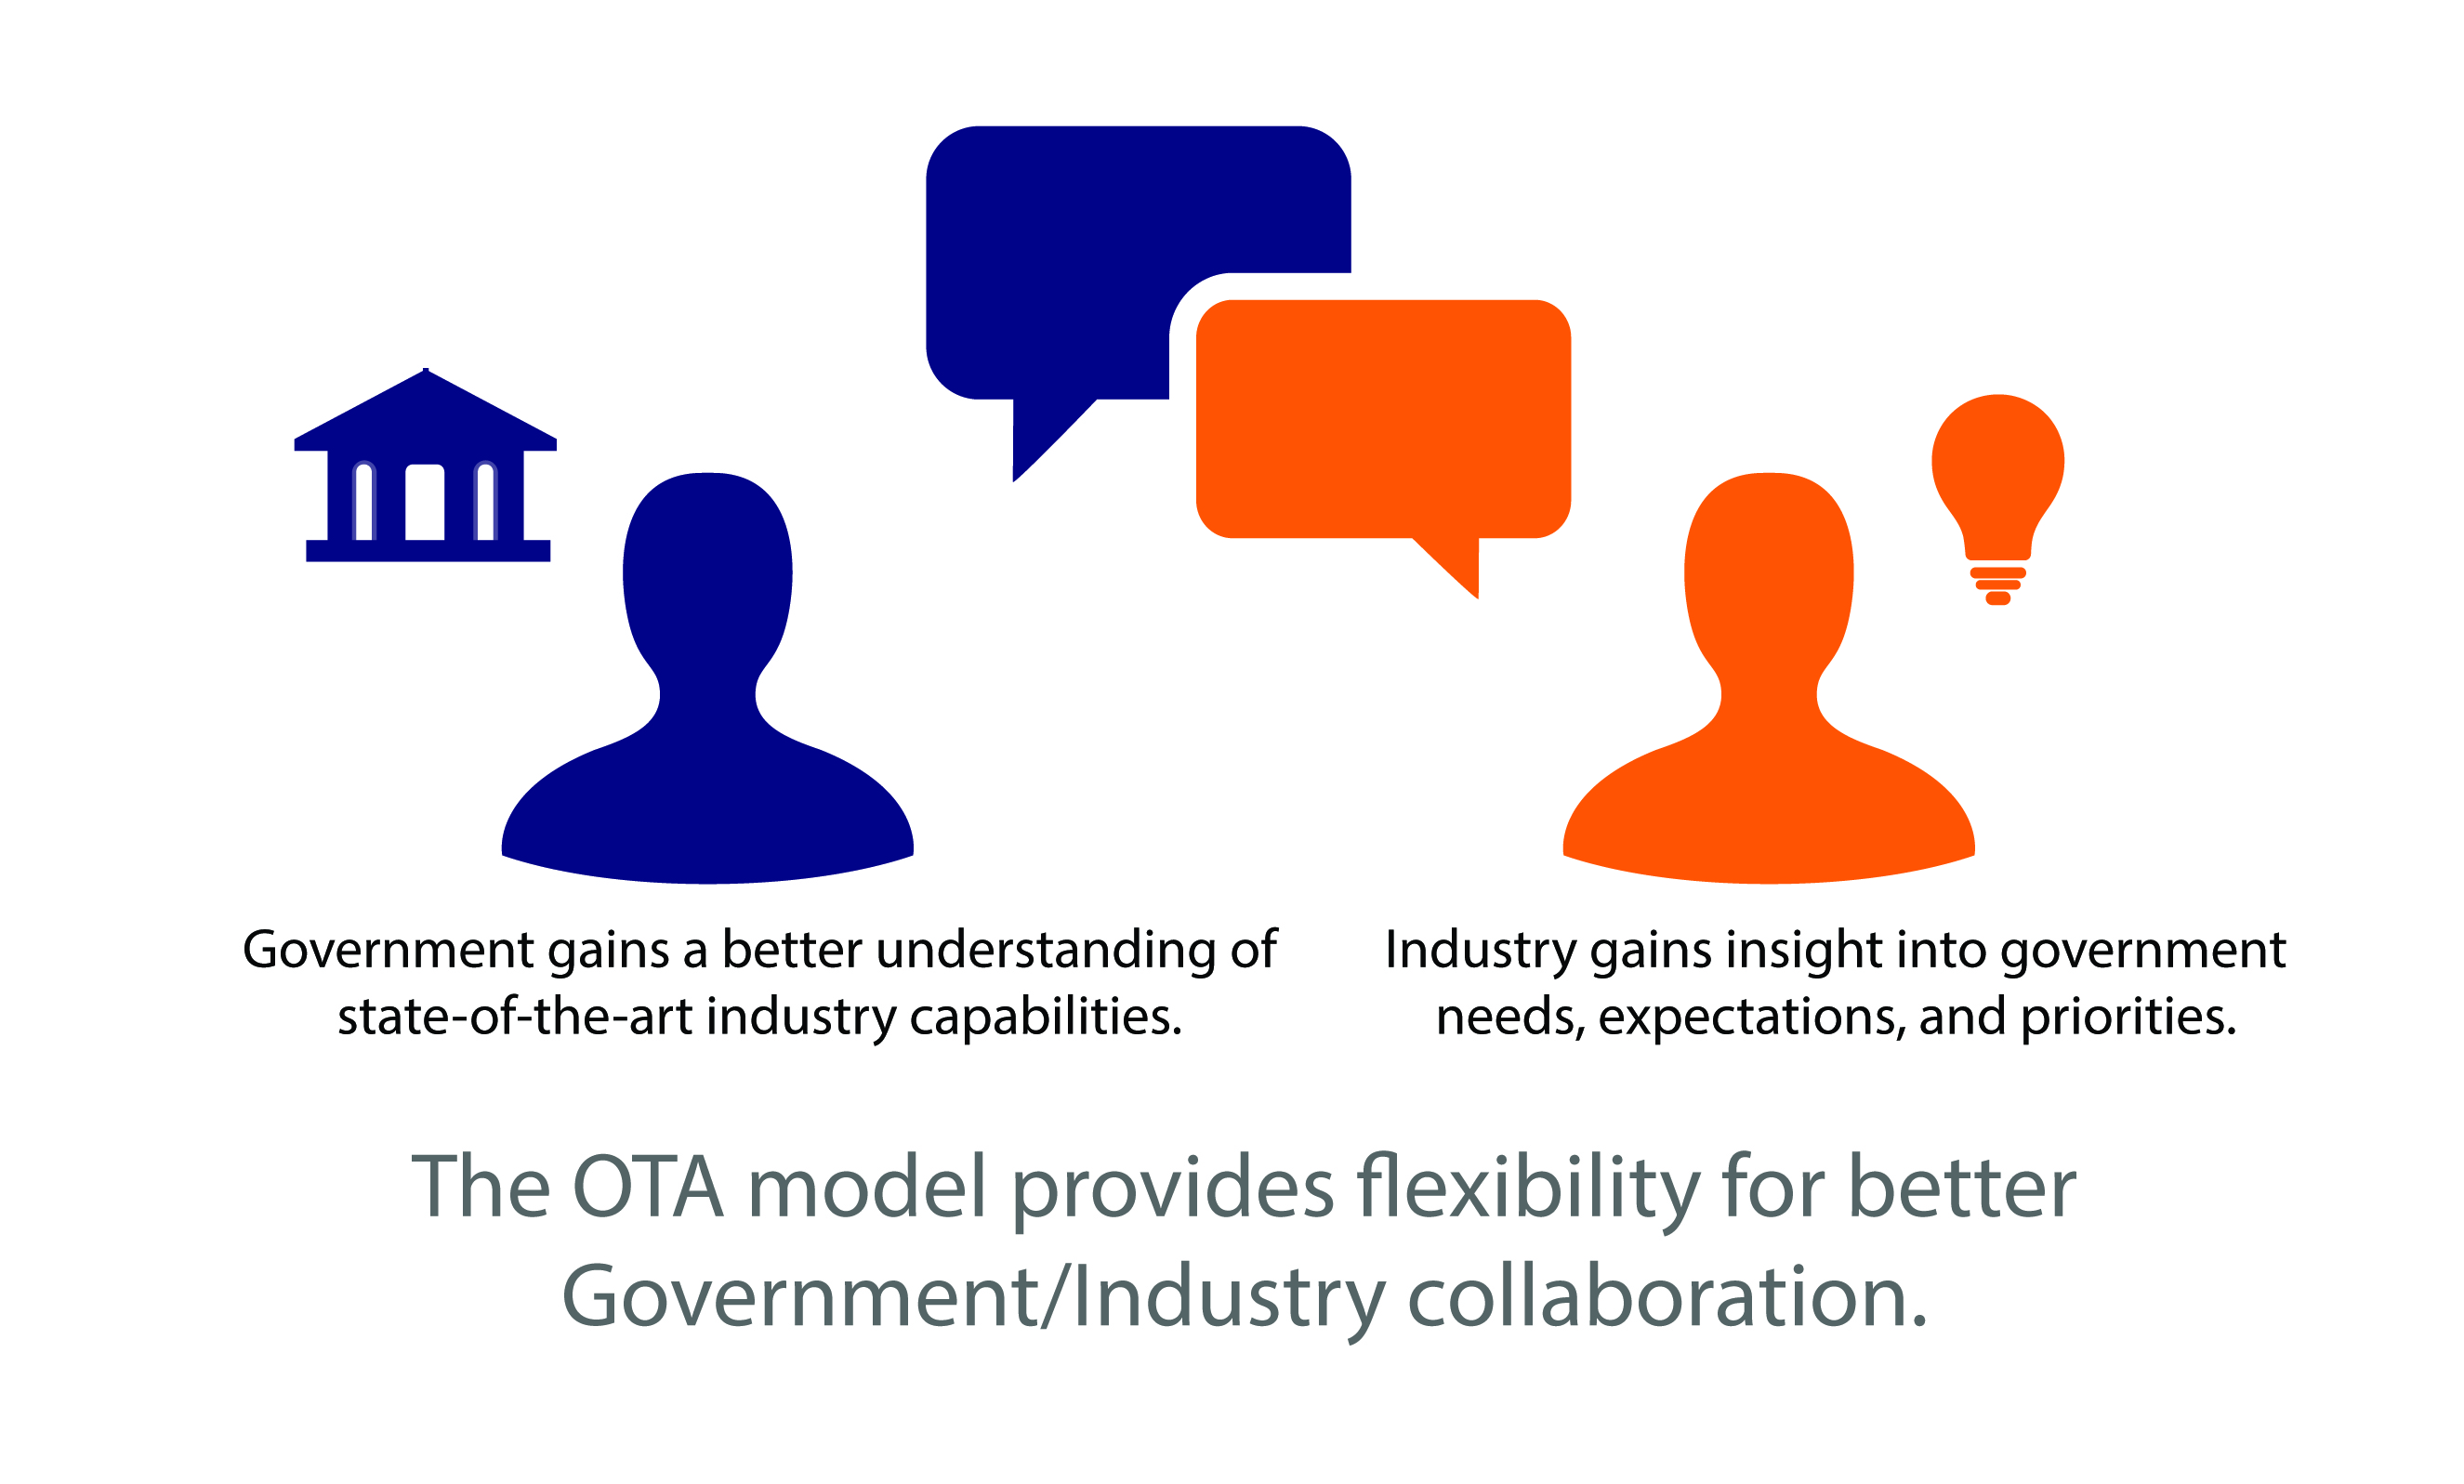 The OTA model provides flexibility for better Government/Industry collaboration. Government gains a better understanding of state-of-the-art industry capabilities. Industry gains insight into Government needs, expectations and priorities.